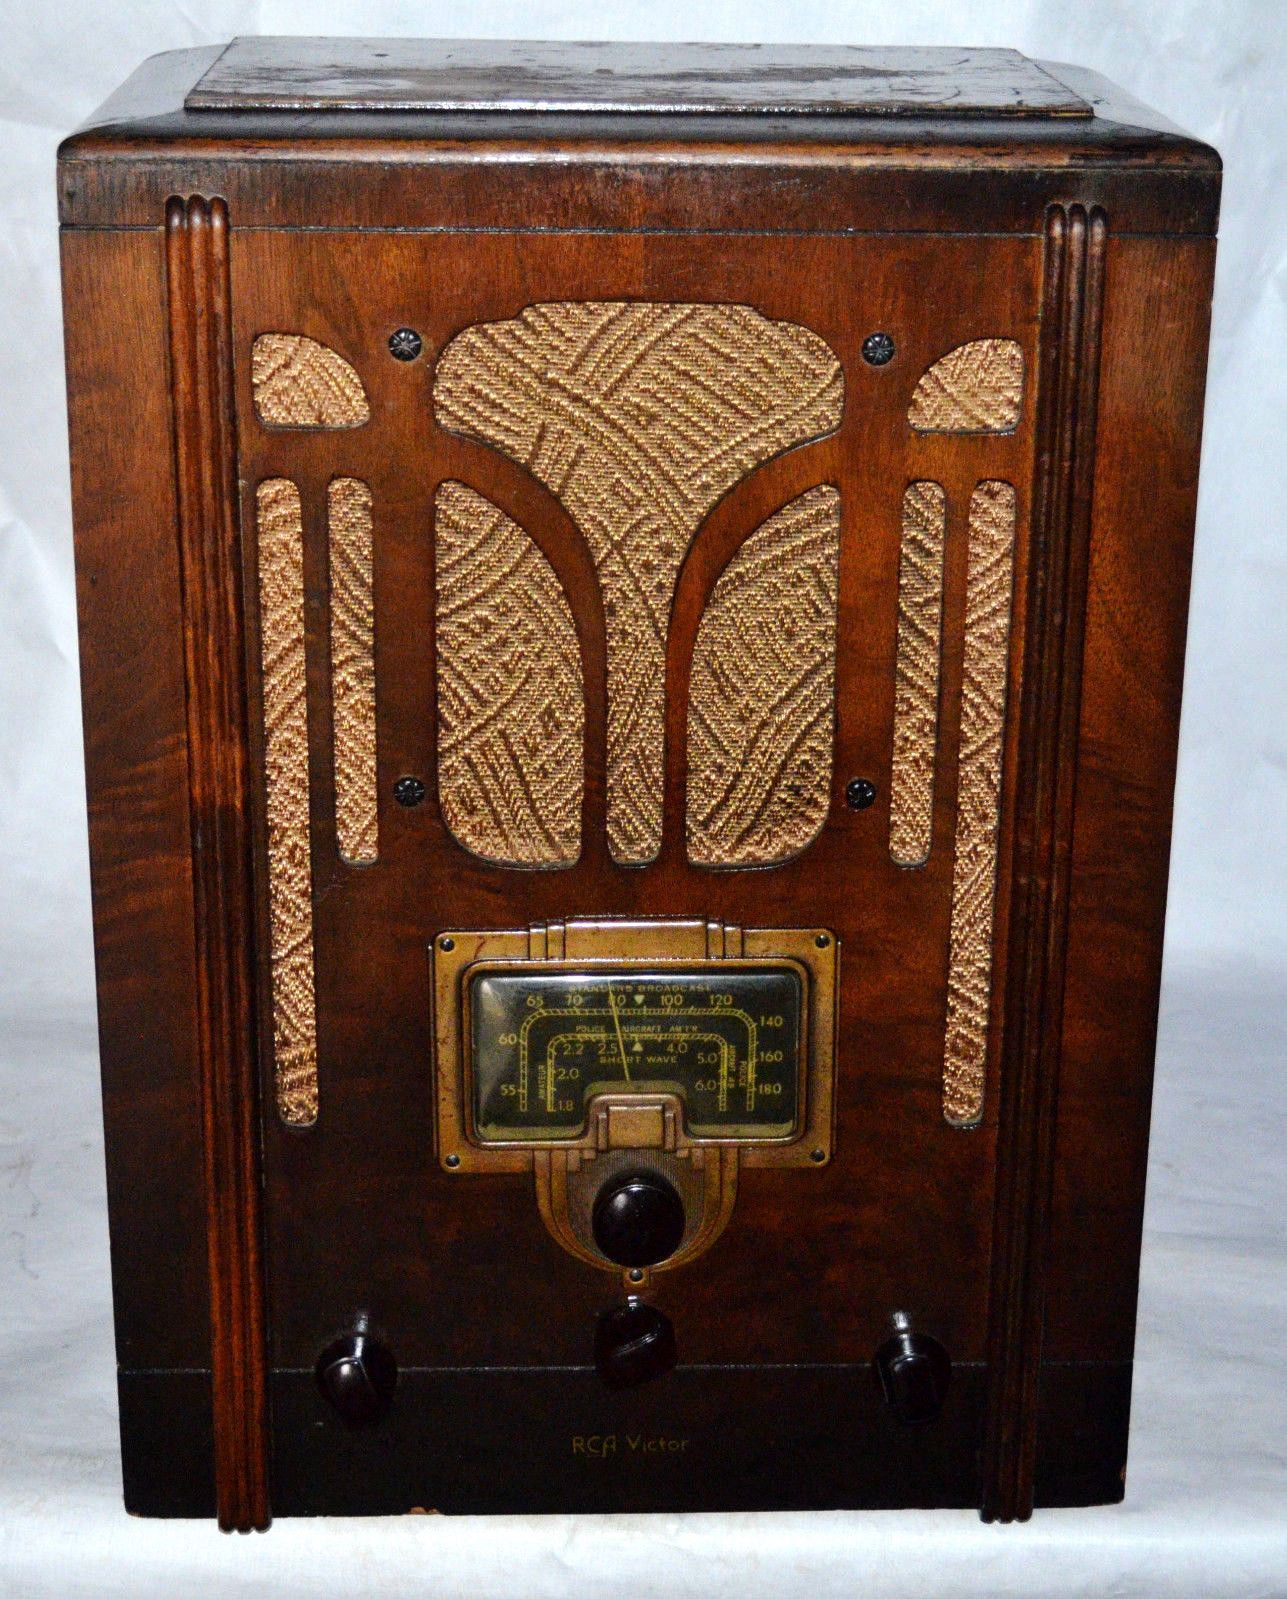 1936 DECO RCA Victor Radio model 5T Vintage wood classic Tombstone barn find https://t.co/fDRL660rxb https://t.co/GB4w8nYER3